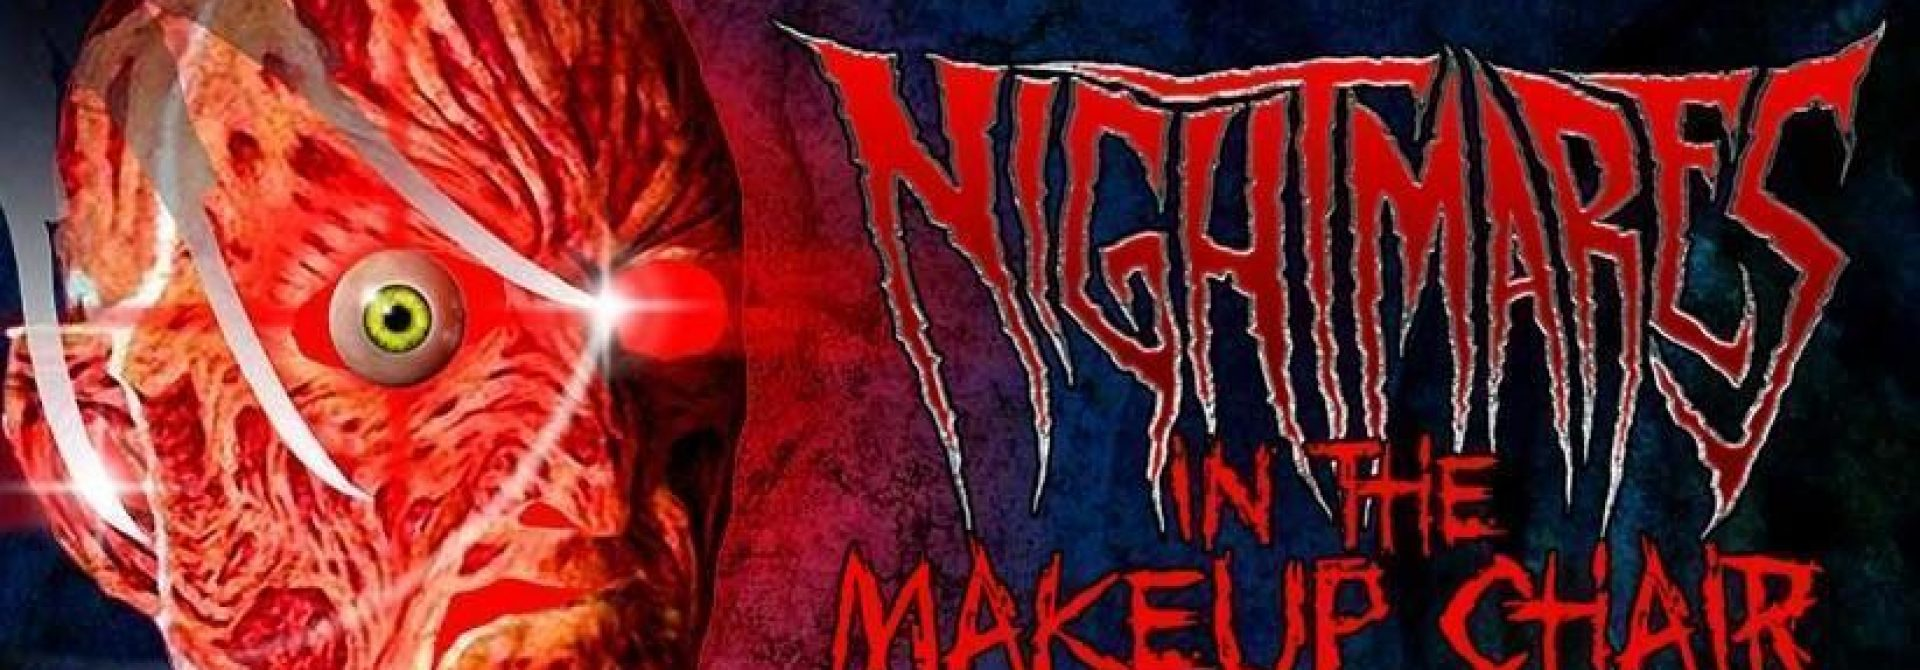 Robert Englund Presents A Nightmare In The Makeup Chair